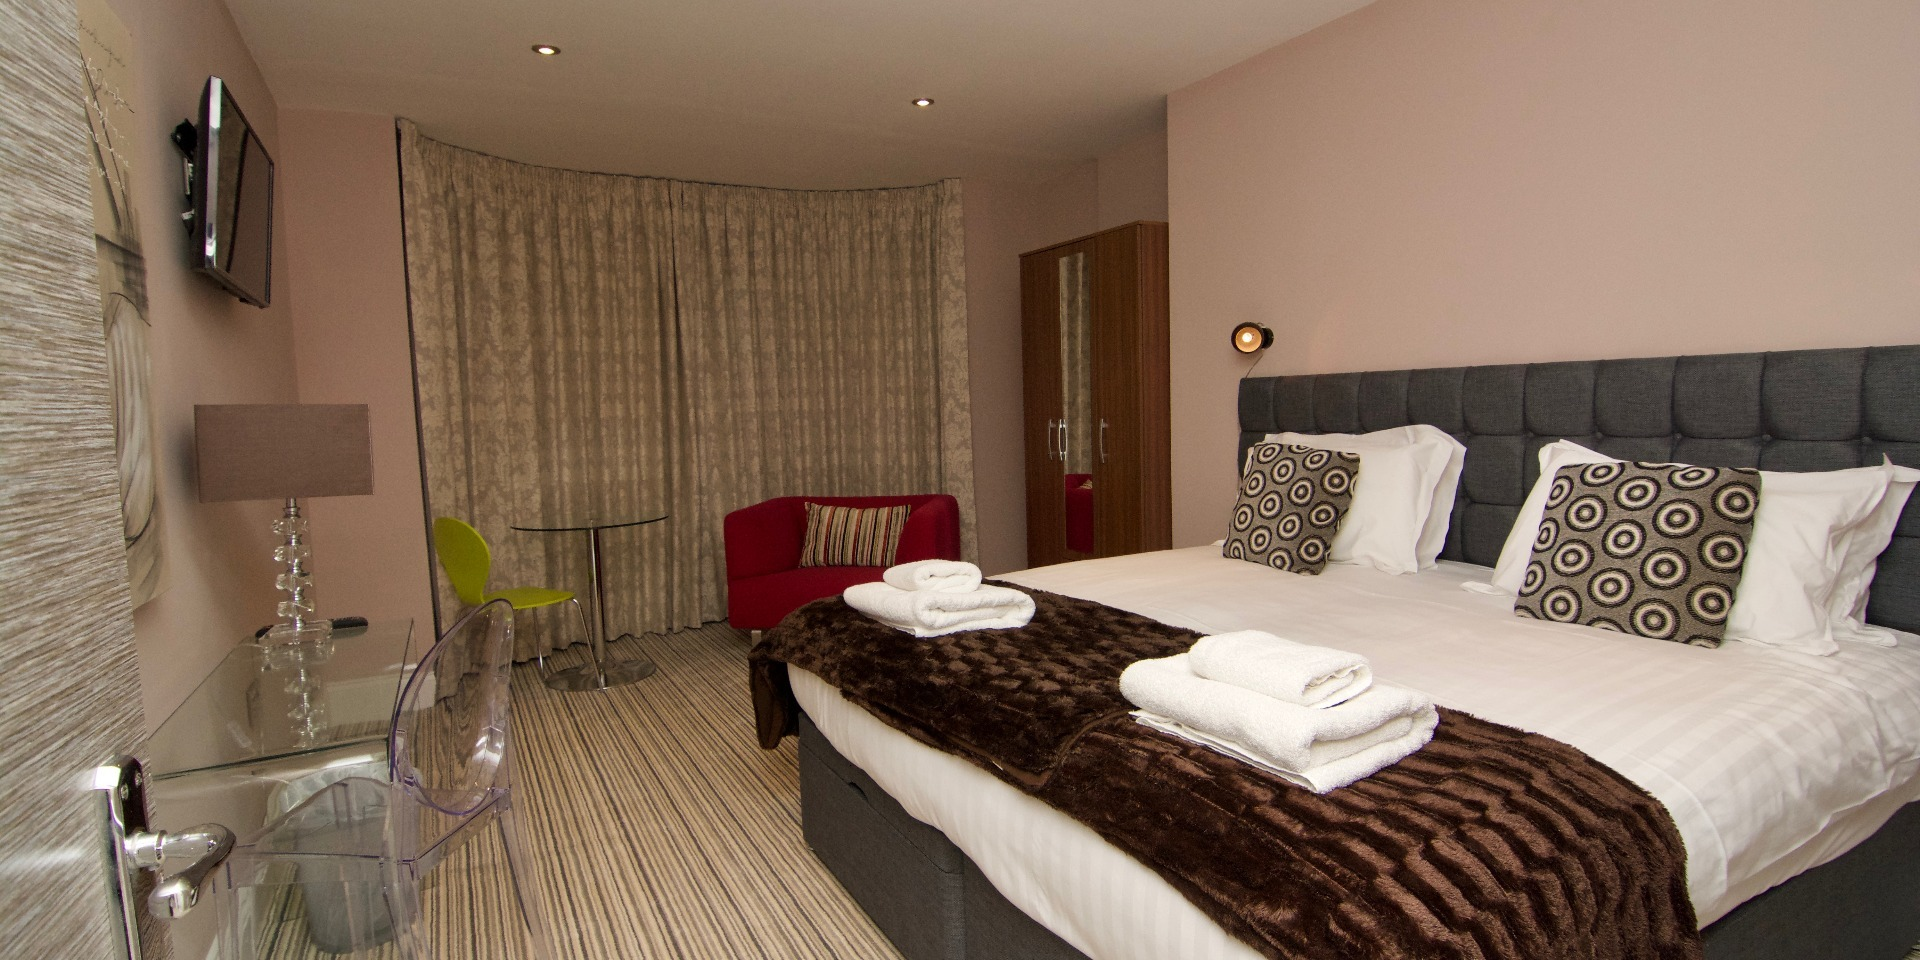 Accommodation Harrogate